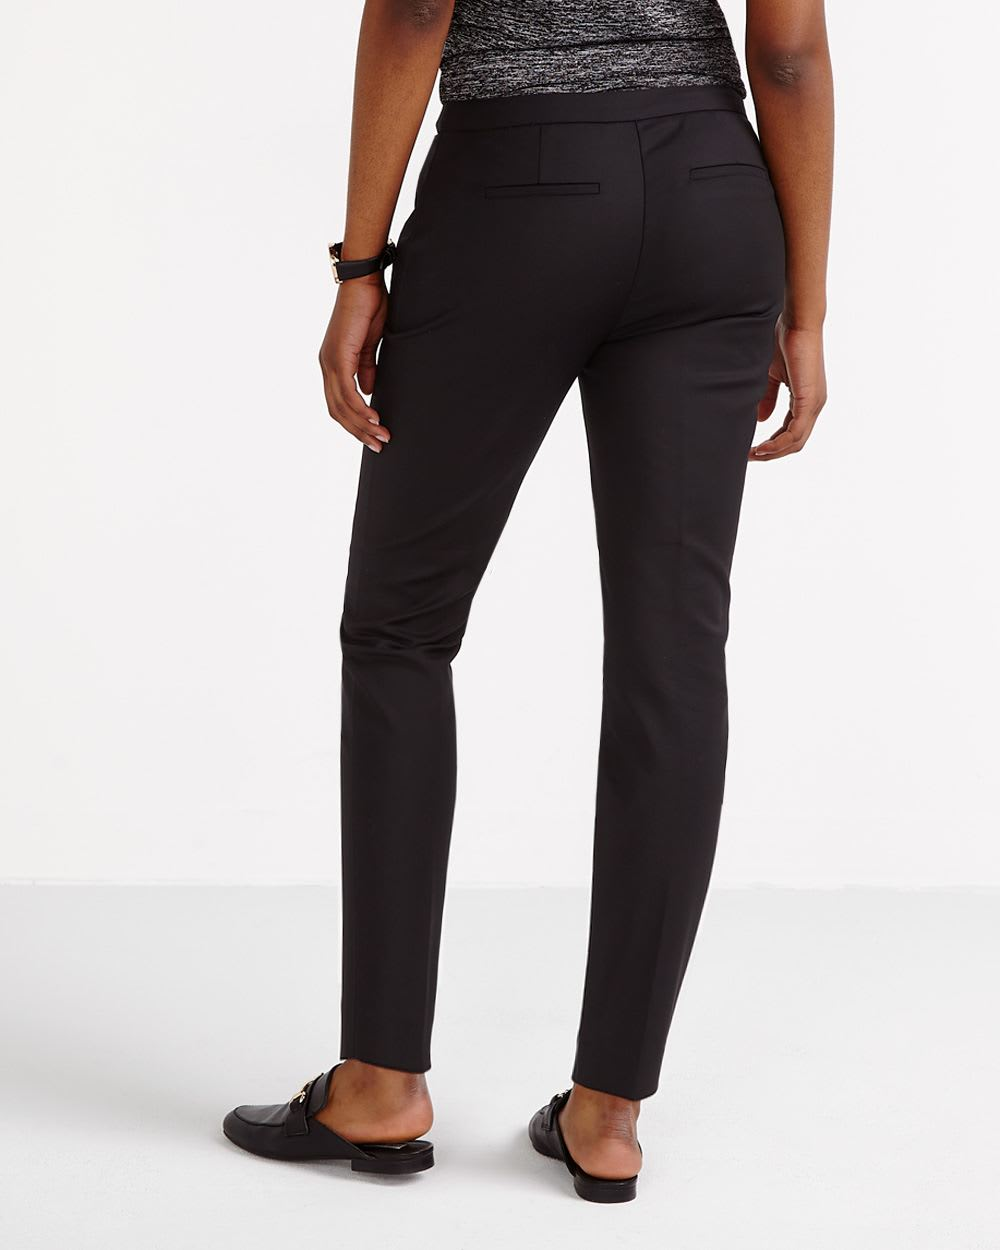 Find great deals on Womens Skinny Pants at Kohl's today! Sponsored Links Plus Size Simply Vera Vera Wang Modern Fit Skinny Ankle Pants. Original. $ Women's Simply Vera Vera Wang High-Waisted Ankle Skinny Pants. Regular. $ Petite Napa Valley Millenium Pull On Skinny Pants.